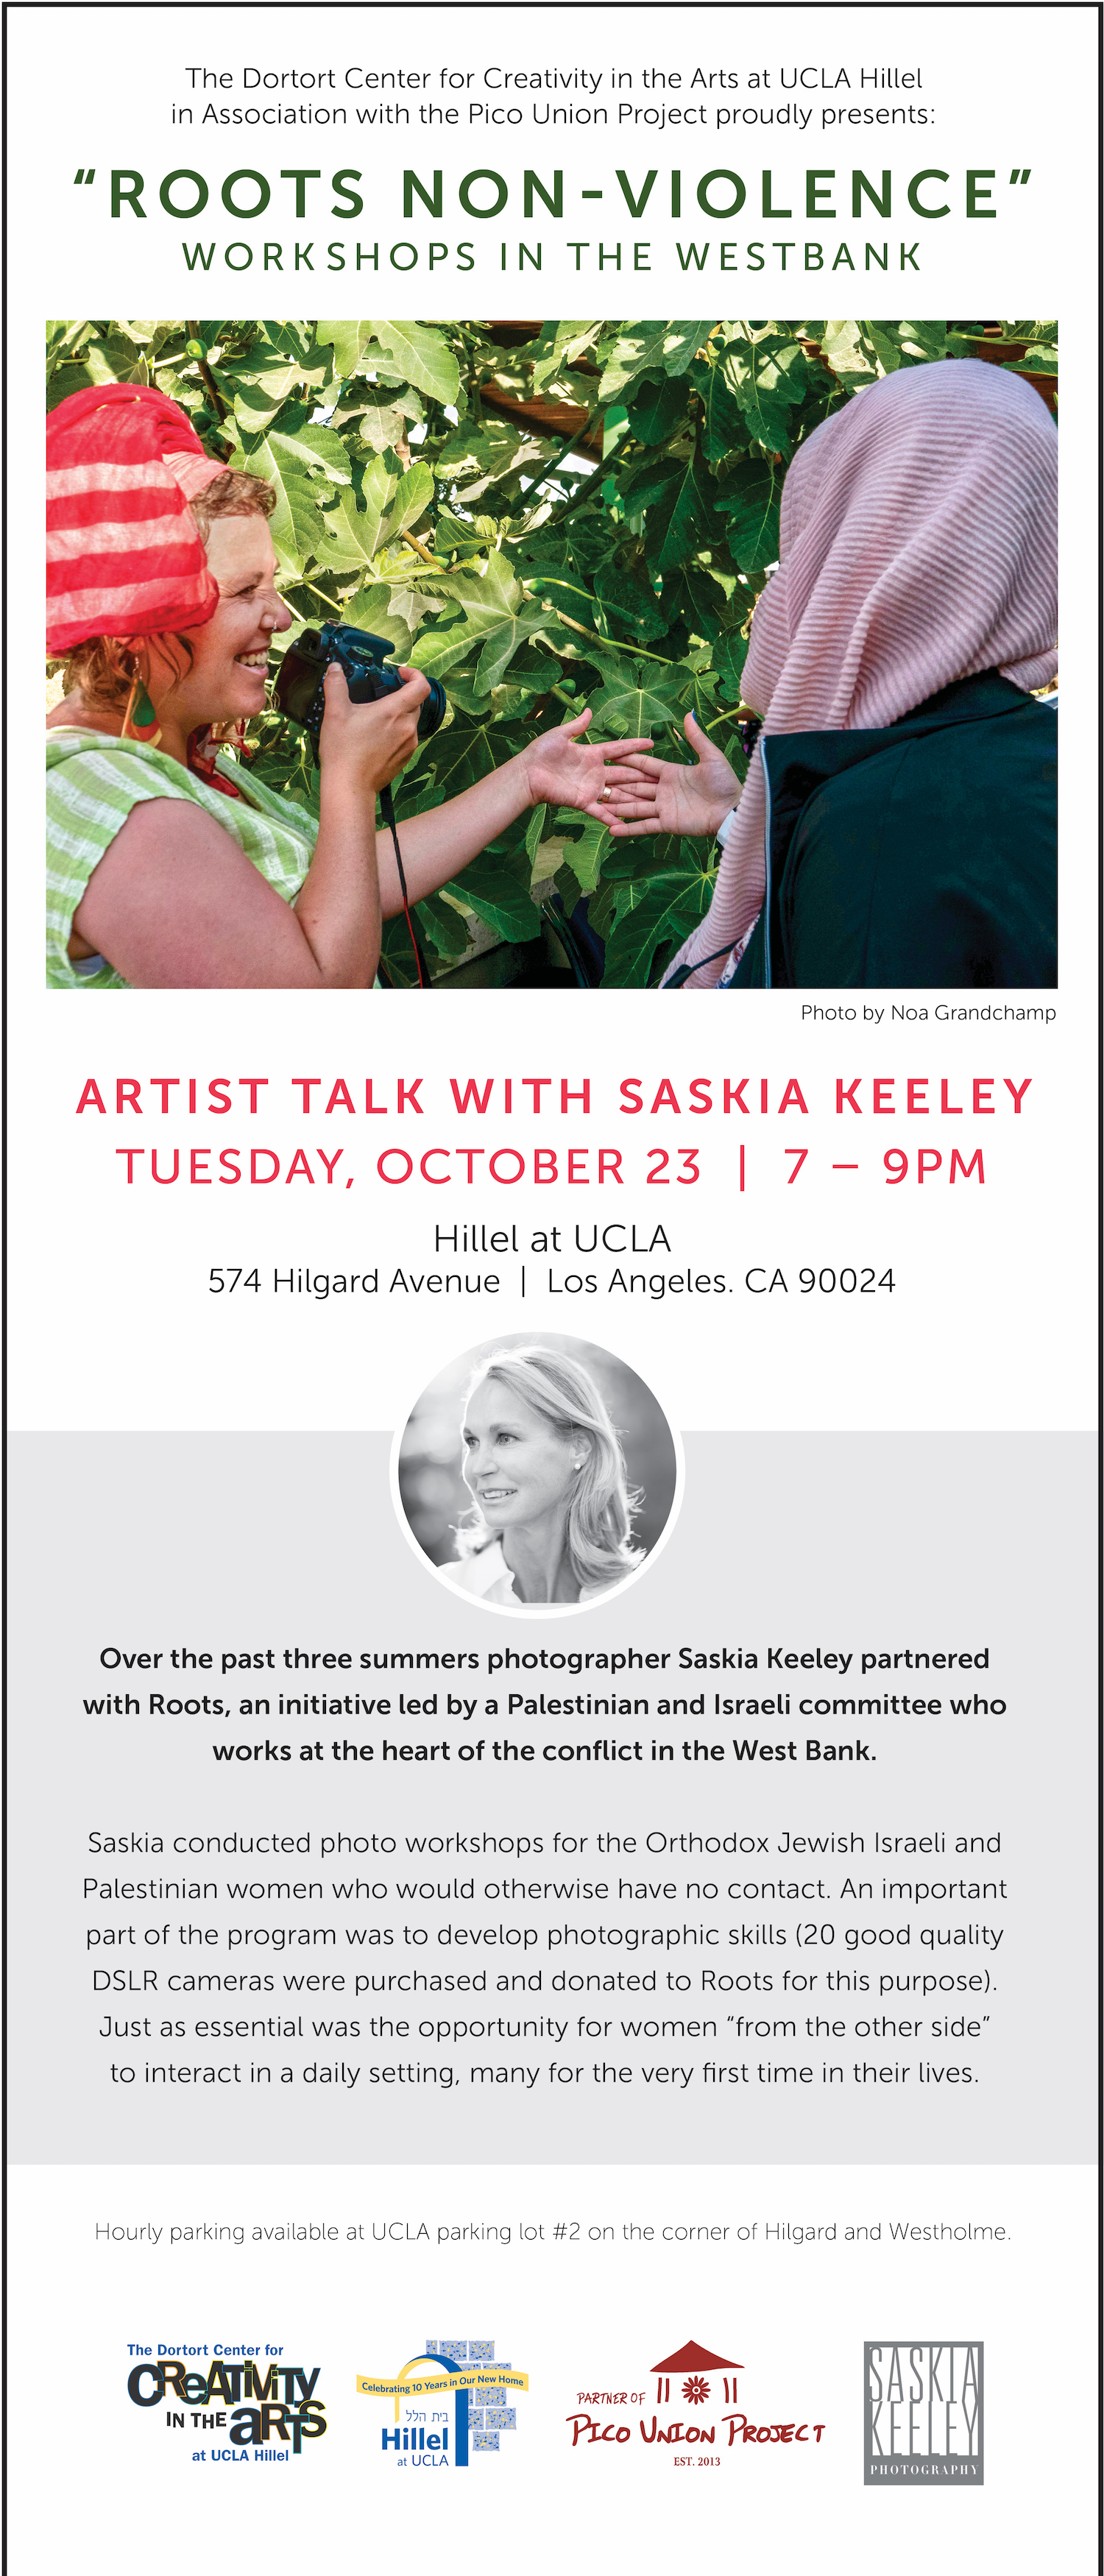 saskia-keeley-photography-humanitarian-photojournalism-documentarian-roots-non-violence-workshops-ucla-hillel-the-dortort-center-for-creativity-in-the-arts.jpg